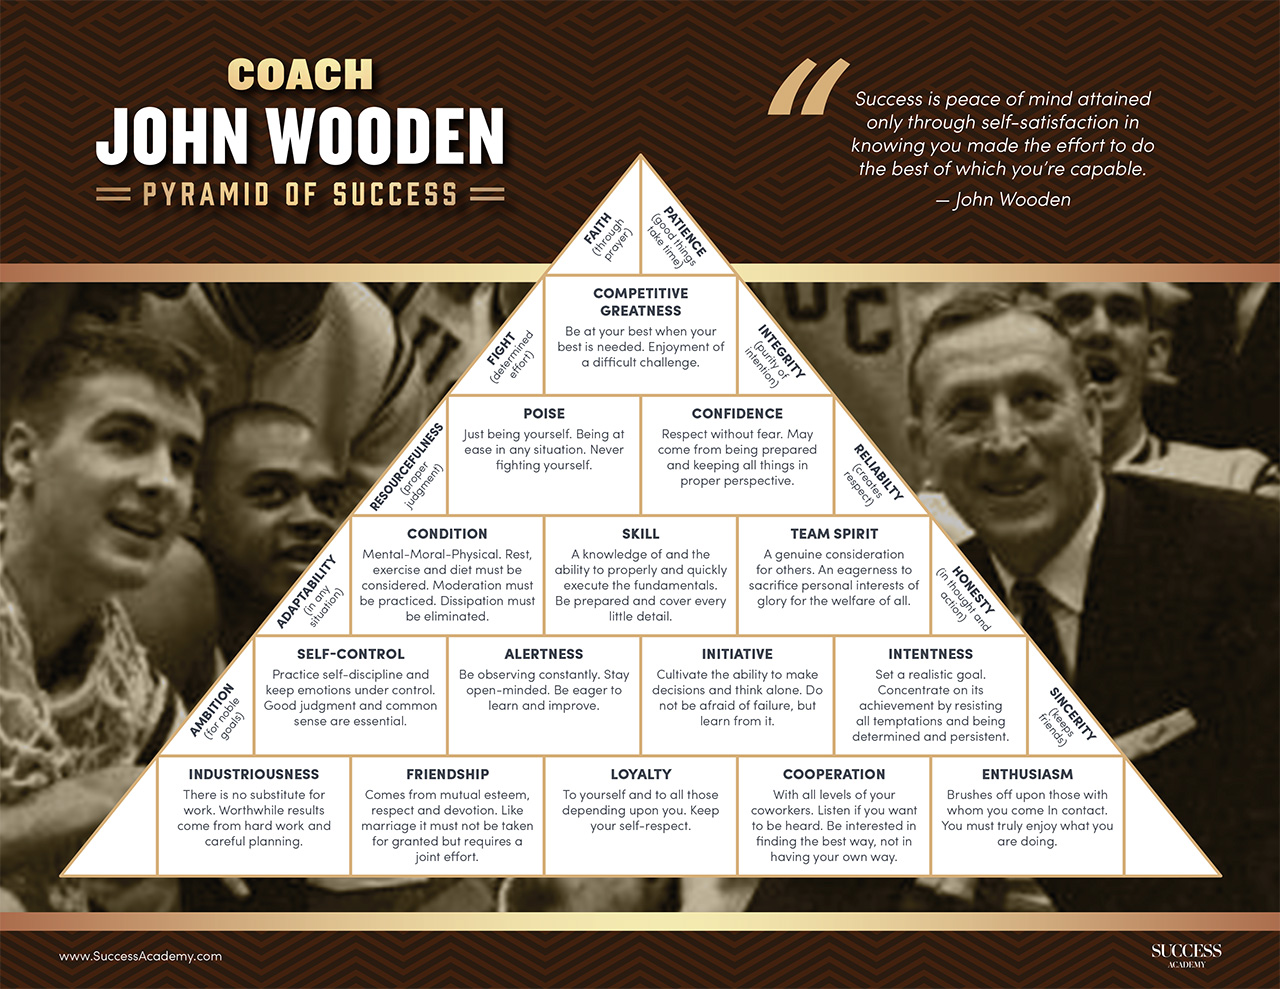 Wooden-Pyramid-of-Success